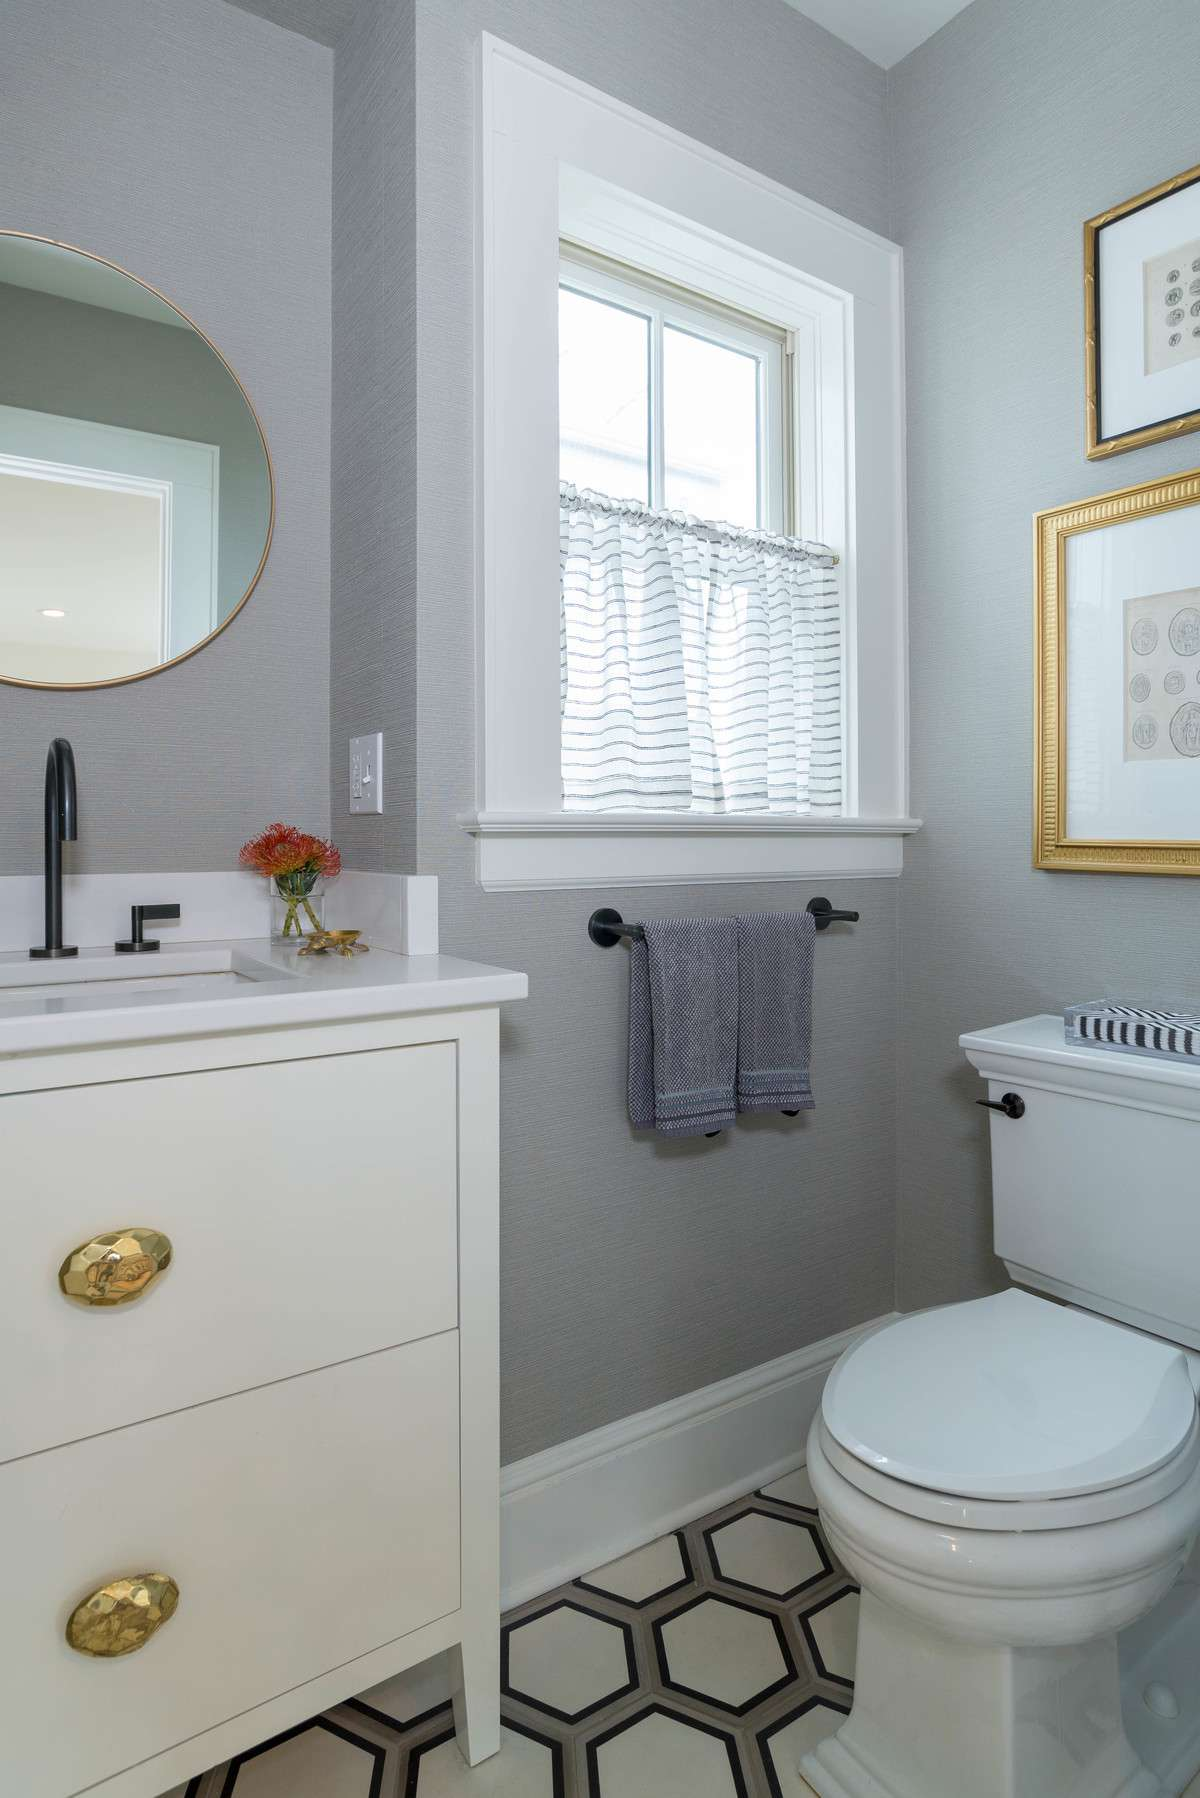 Small Bathrooms B With Style And Function